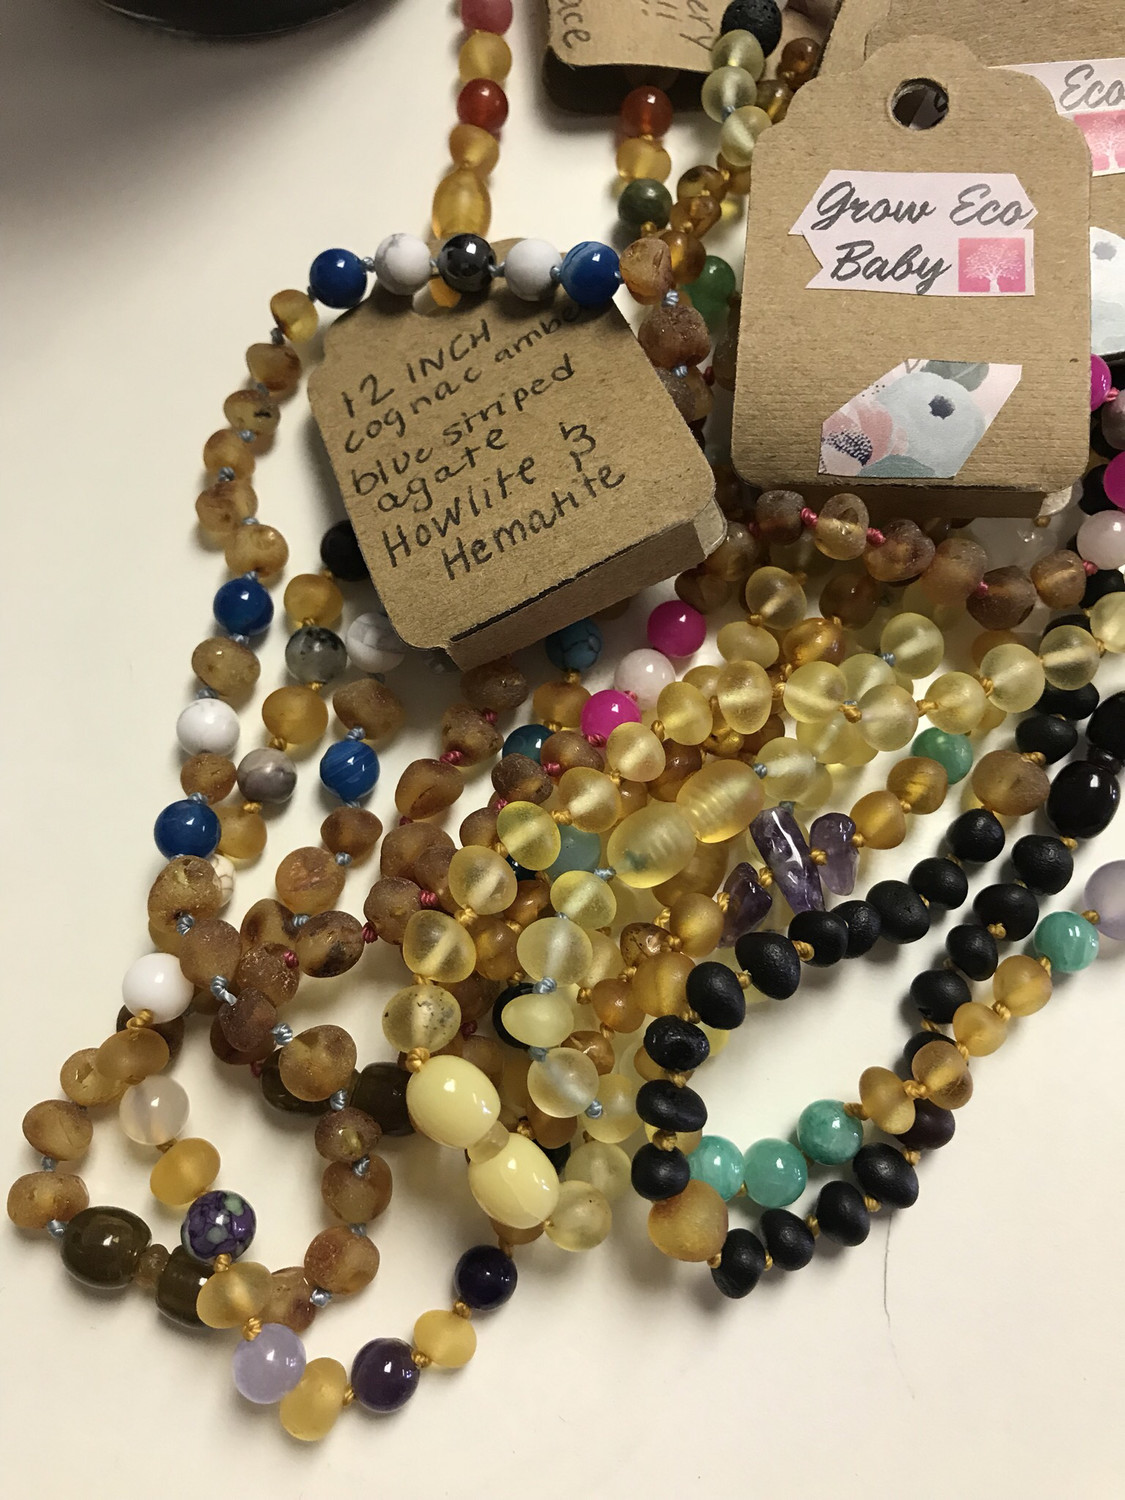 Grow Eco Baby Baltic Amber Necklace